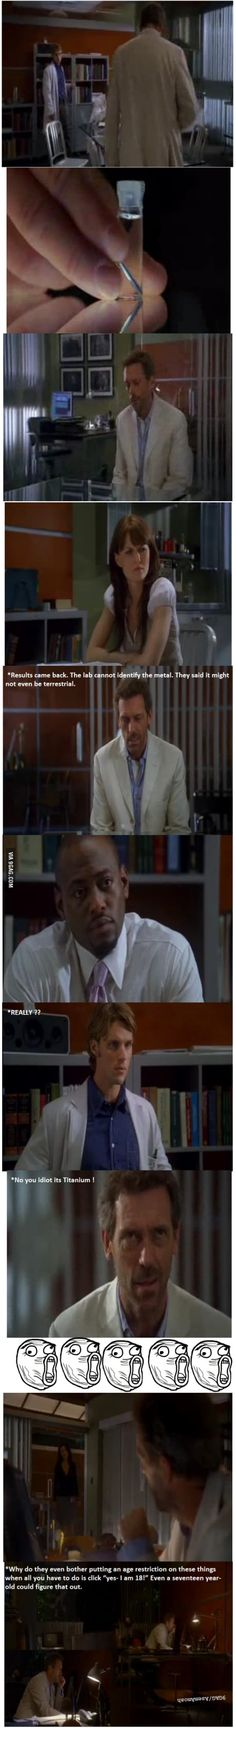 This is why I watch House MD ...